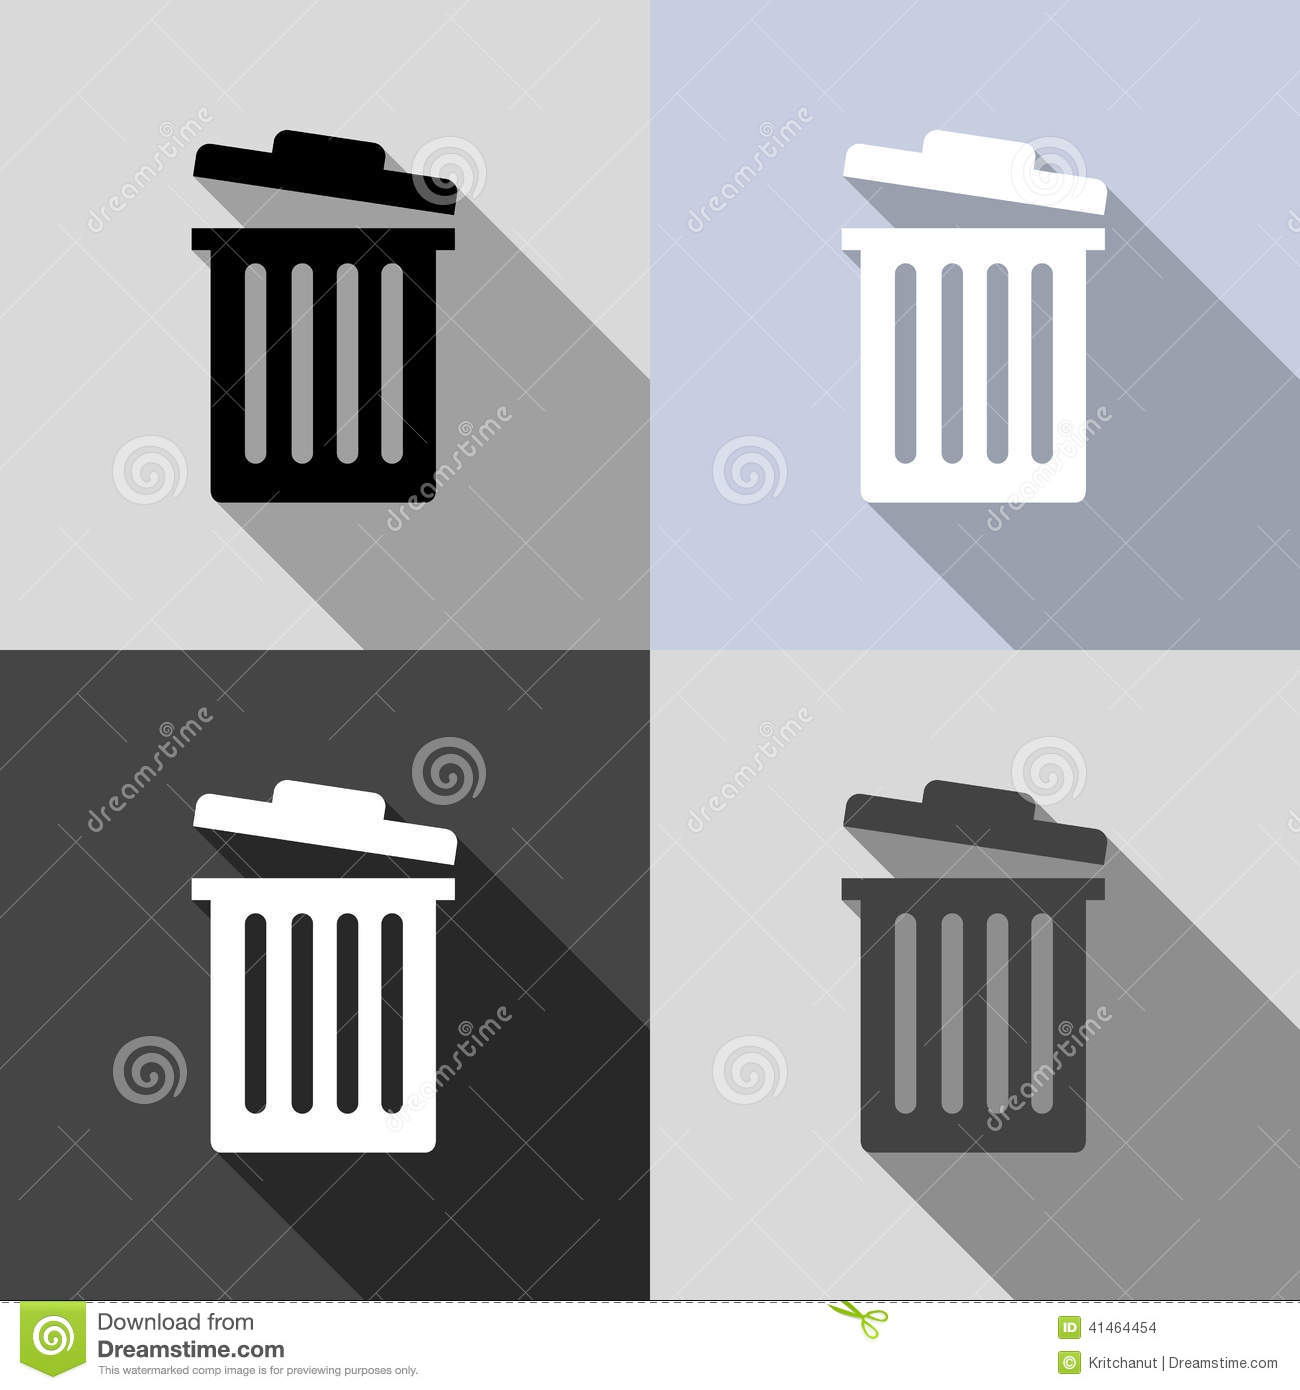 how to delete the recycling bin icon